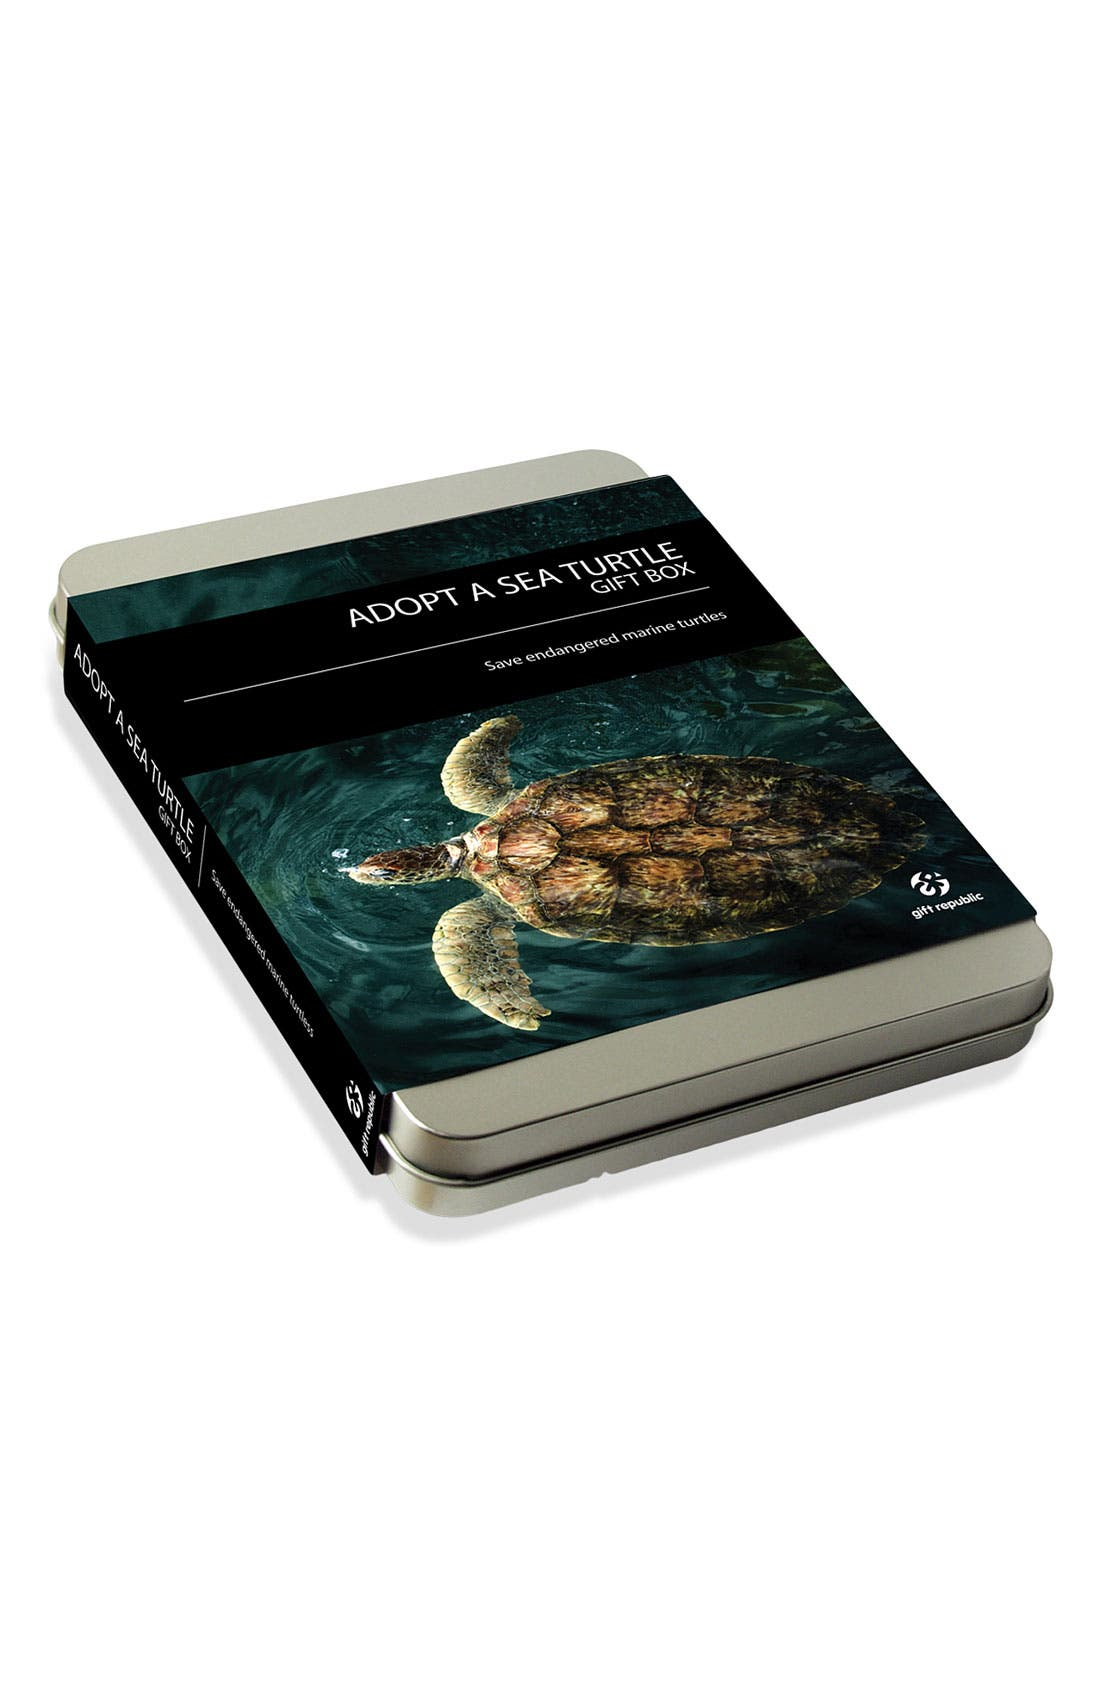 'Adopt a Sea Turtle' Gift Box,                             Main thumbnail 1, color,                             000